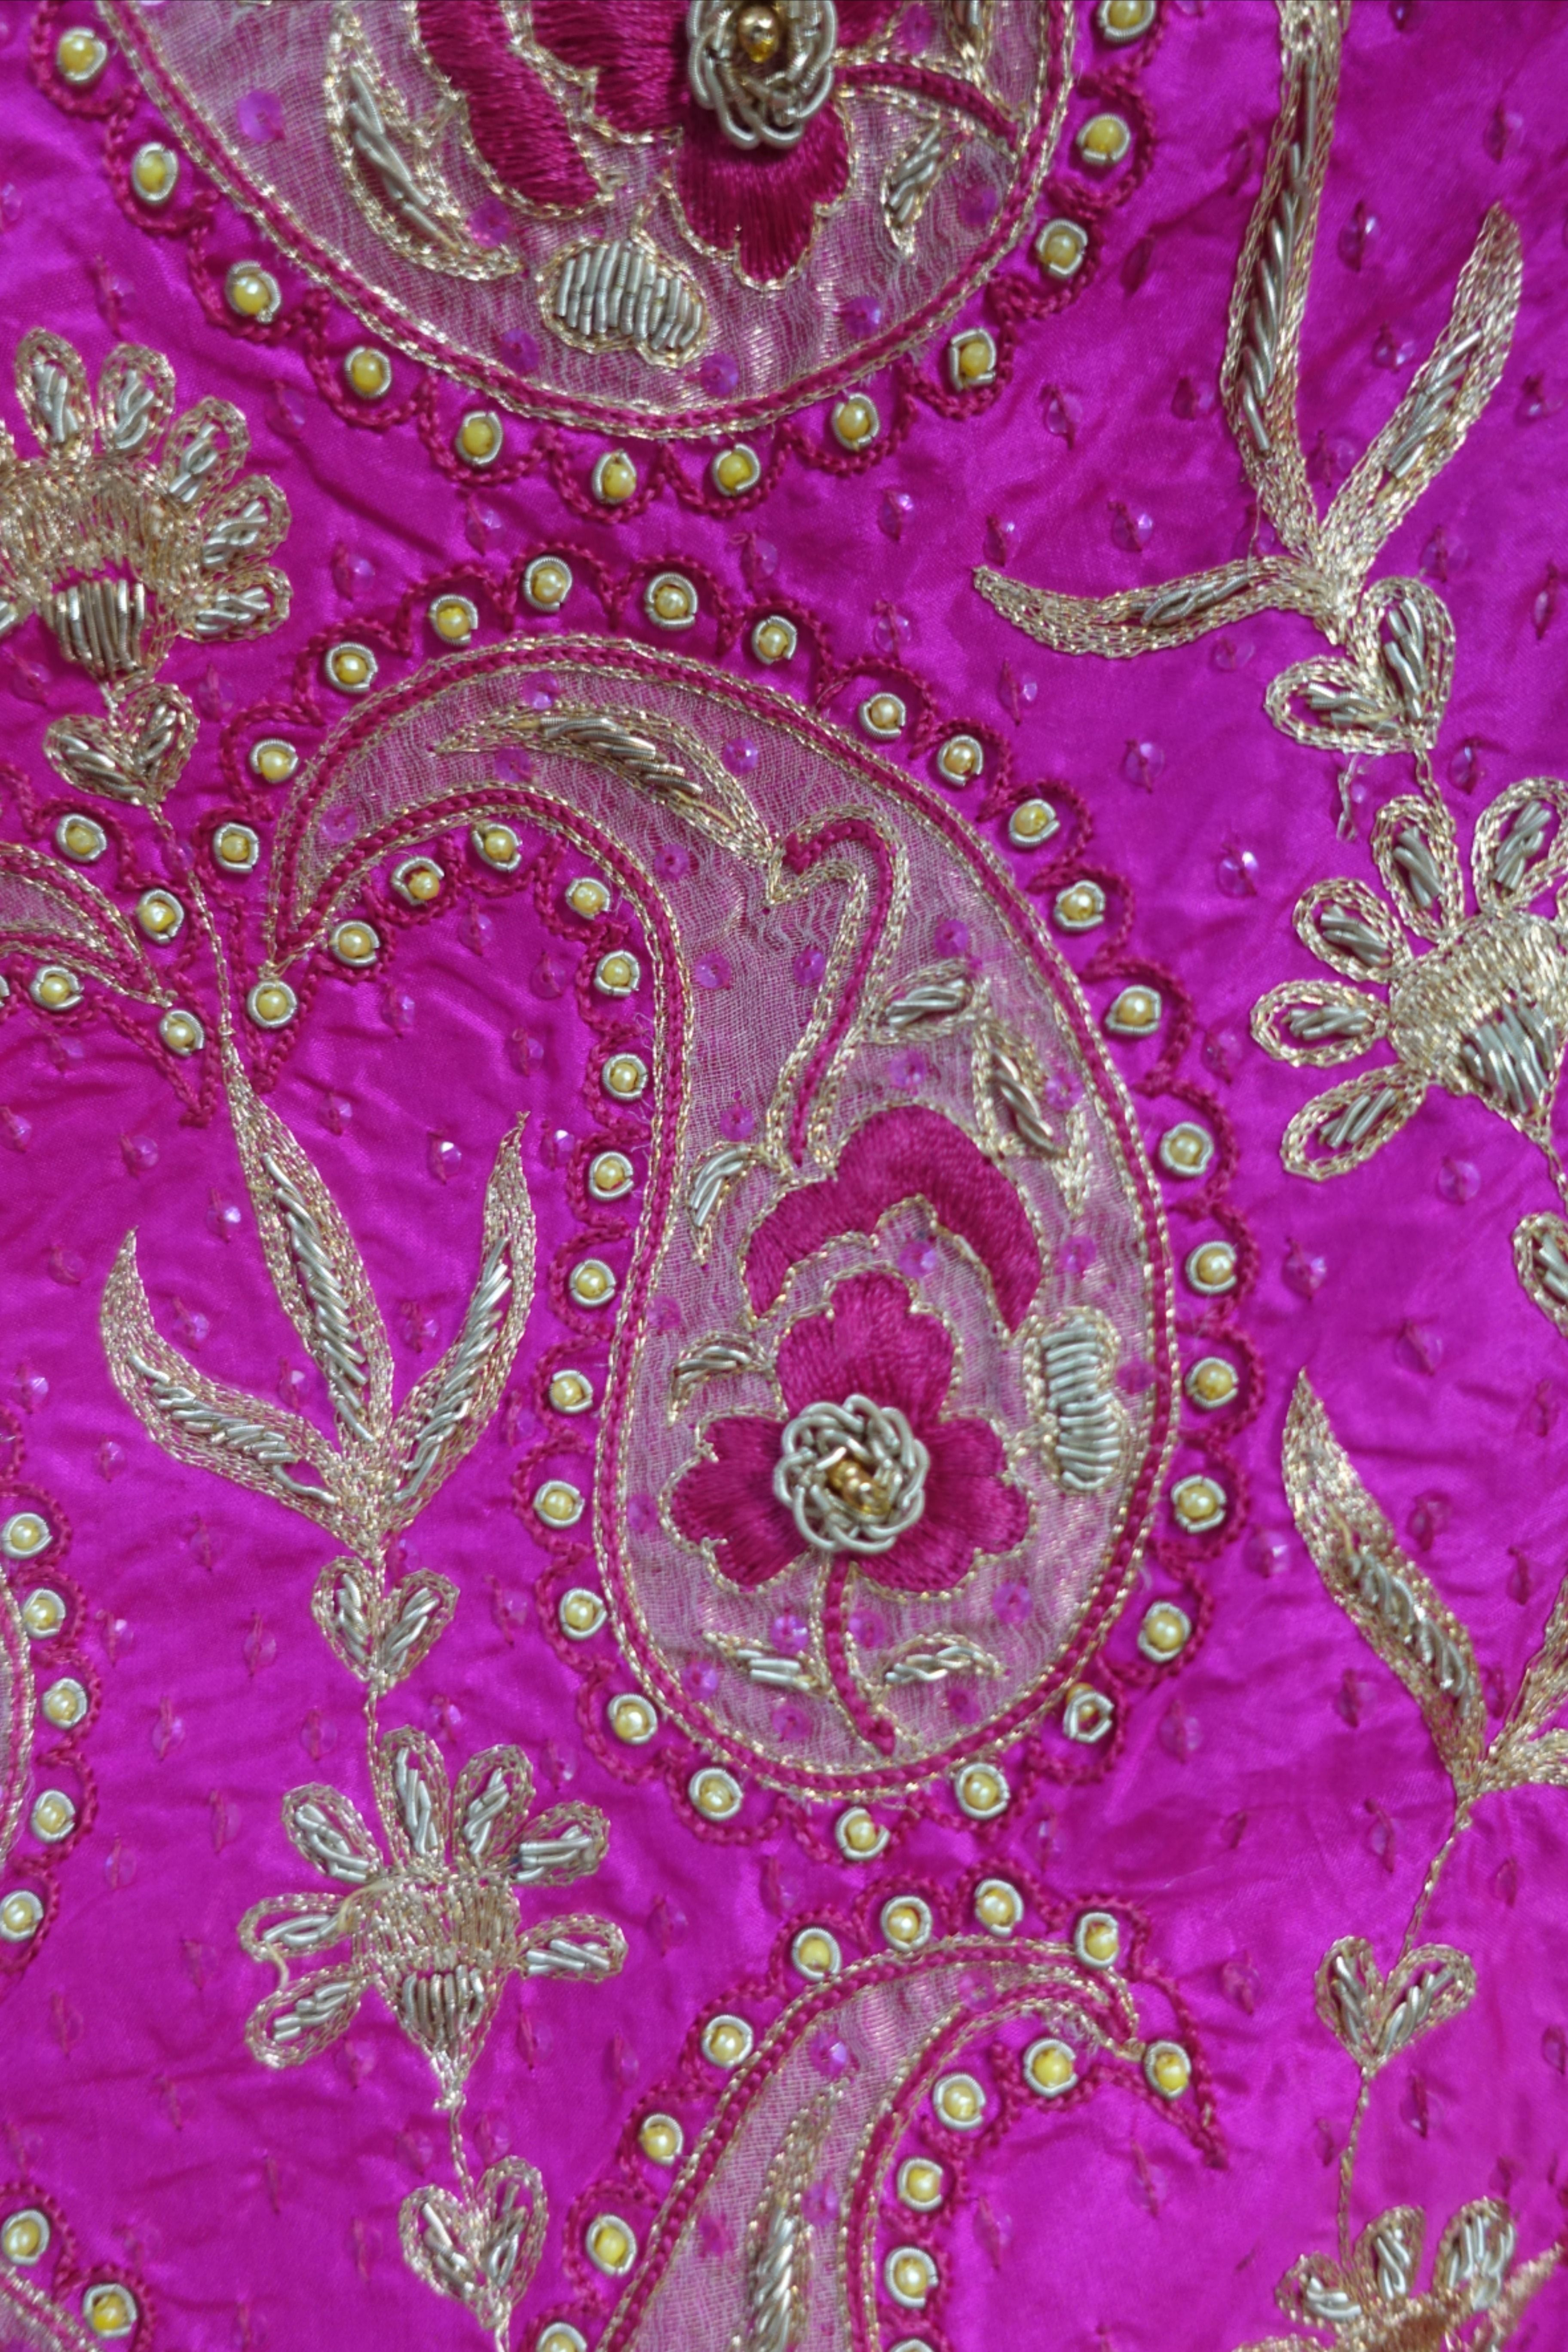 Look at the detailing on this pure silk, it has fine silk organza edges with gold zardosi, delicate embroidery, fine tilla work and small pearls.  This is part of a wedding trousseau from 30 years ago and has never been used.  . Swipe right to see the sari. . #indiansuitcompany . . #pink #trousseau #indianwedding #bridaltrousseau #oldisgold #vintage #vintagesilk  #zardosi   #embroiderersofinstagram  #indianembroidery #indianfabrics  #indianfabric #goldembroidery  embellishments #goldwork